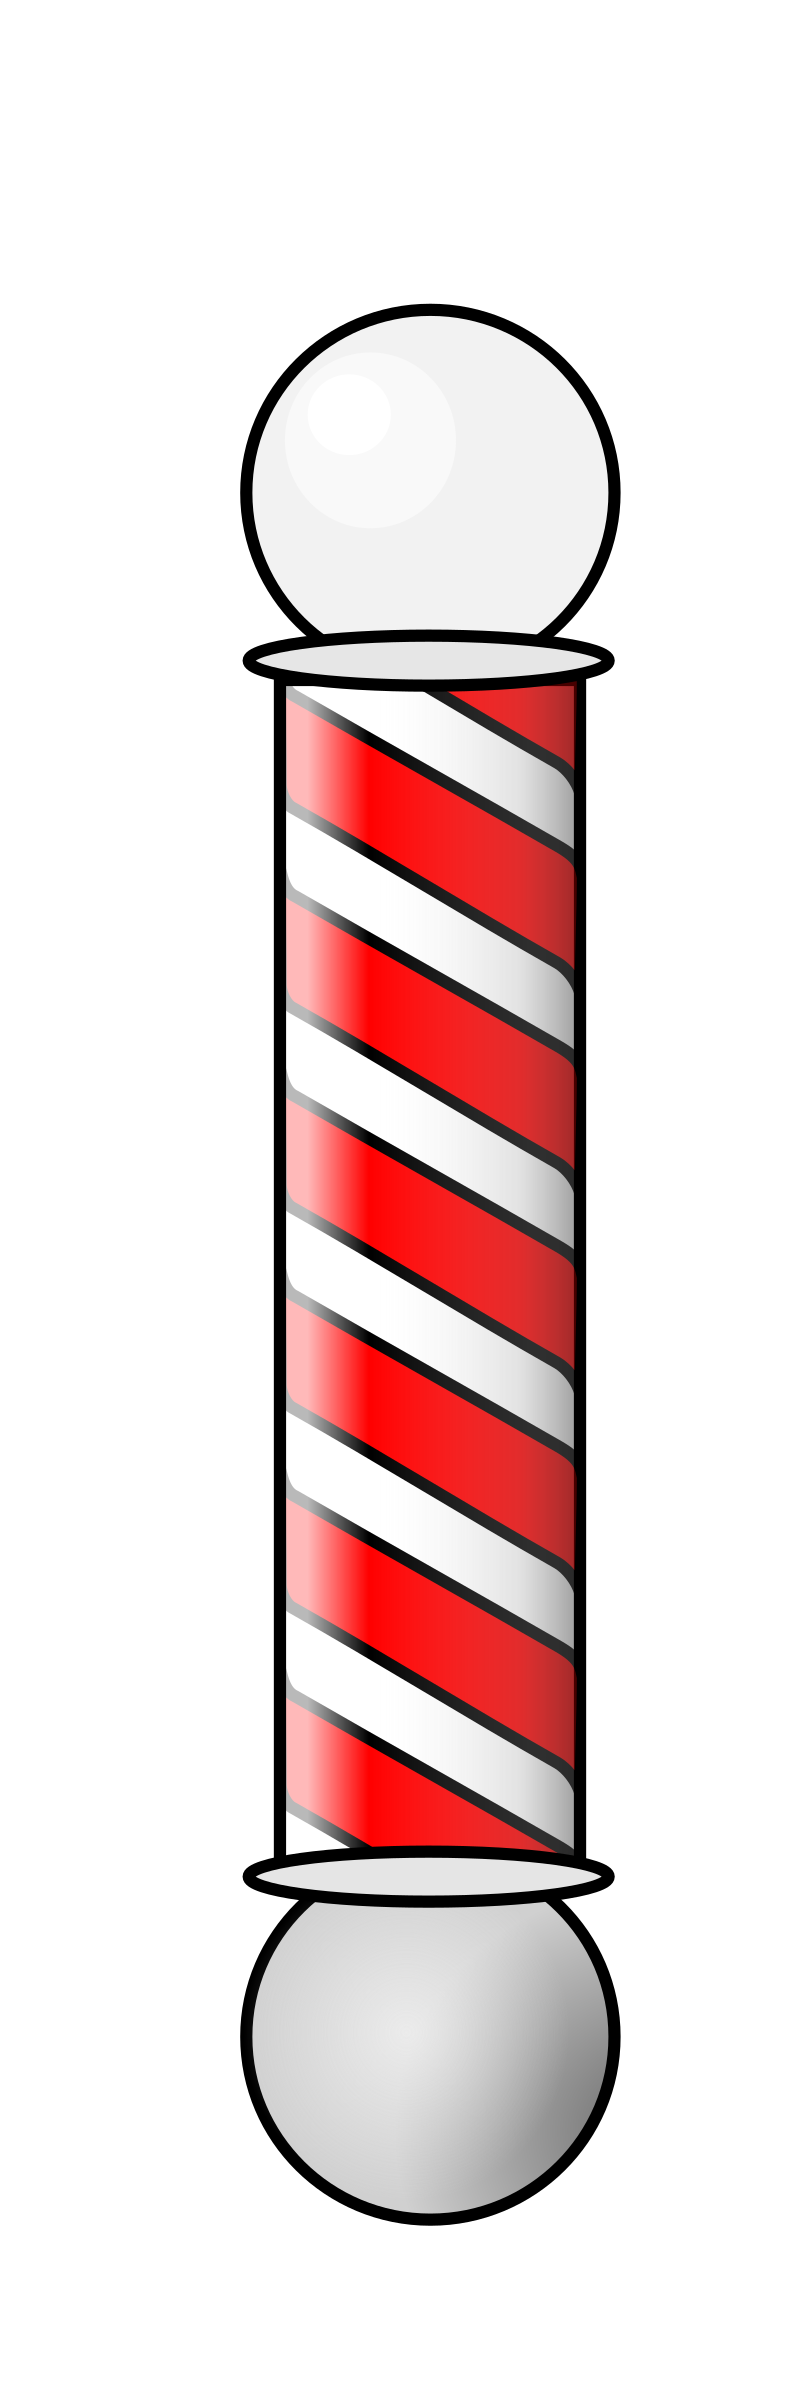 BarberShop Pole 1 SMIL Animation by aukipa